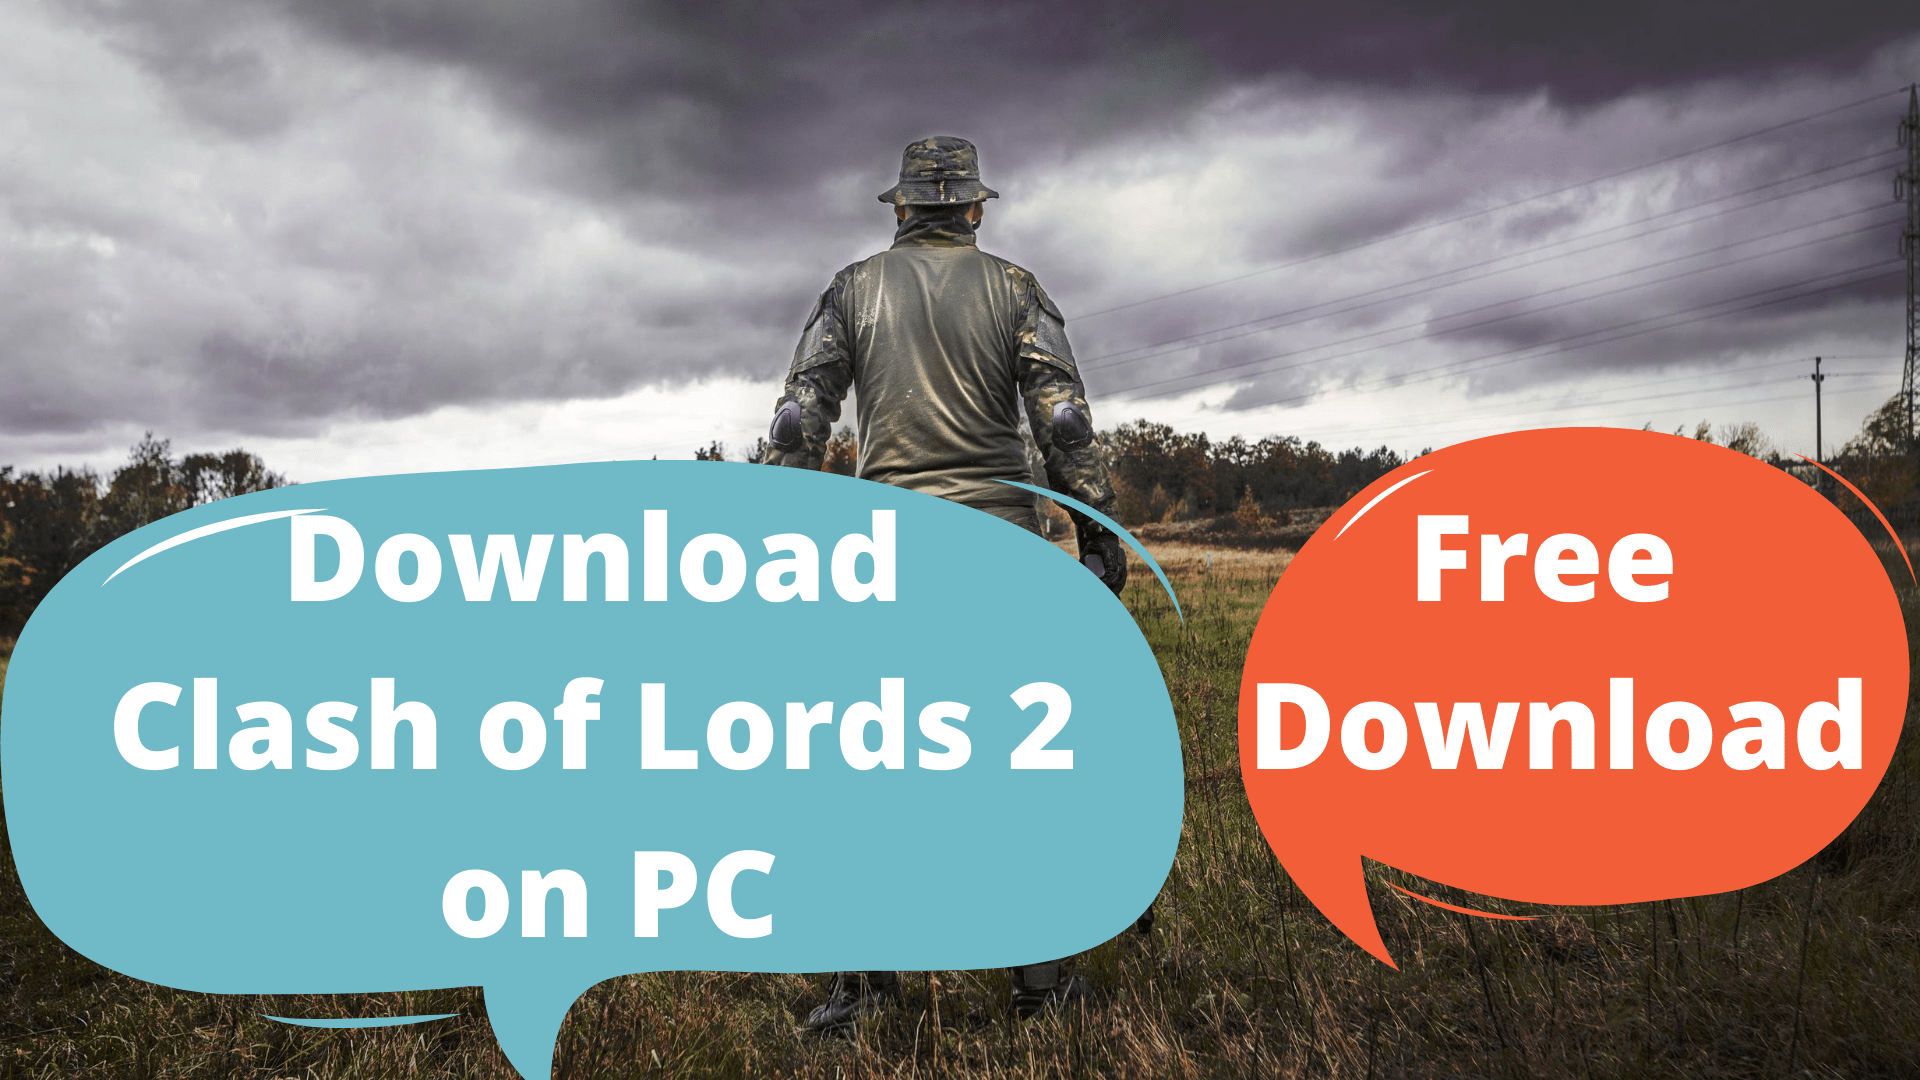 Download Clash of Lords 2 on PC